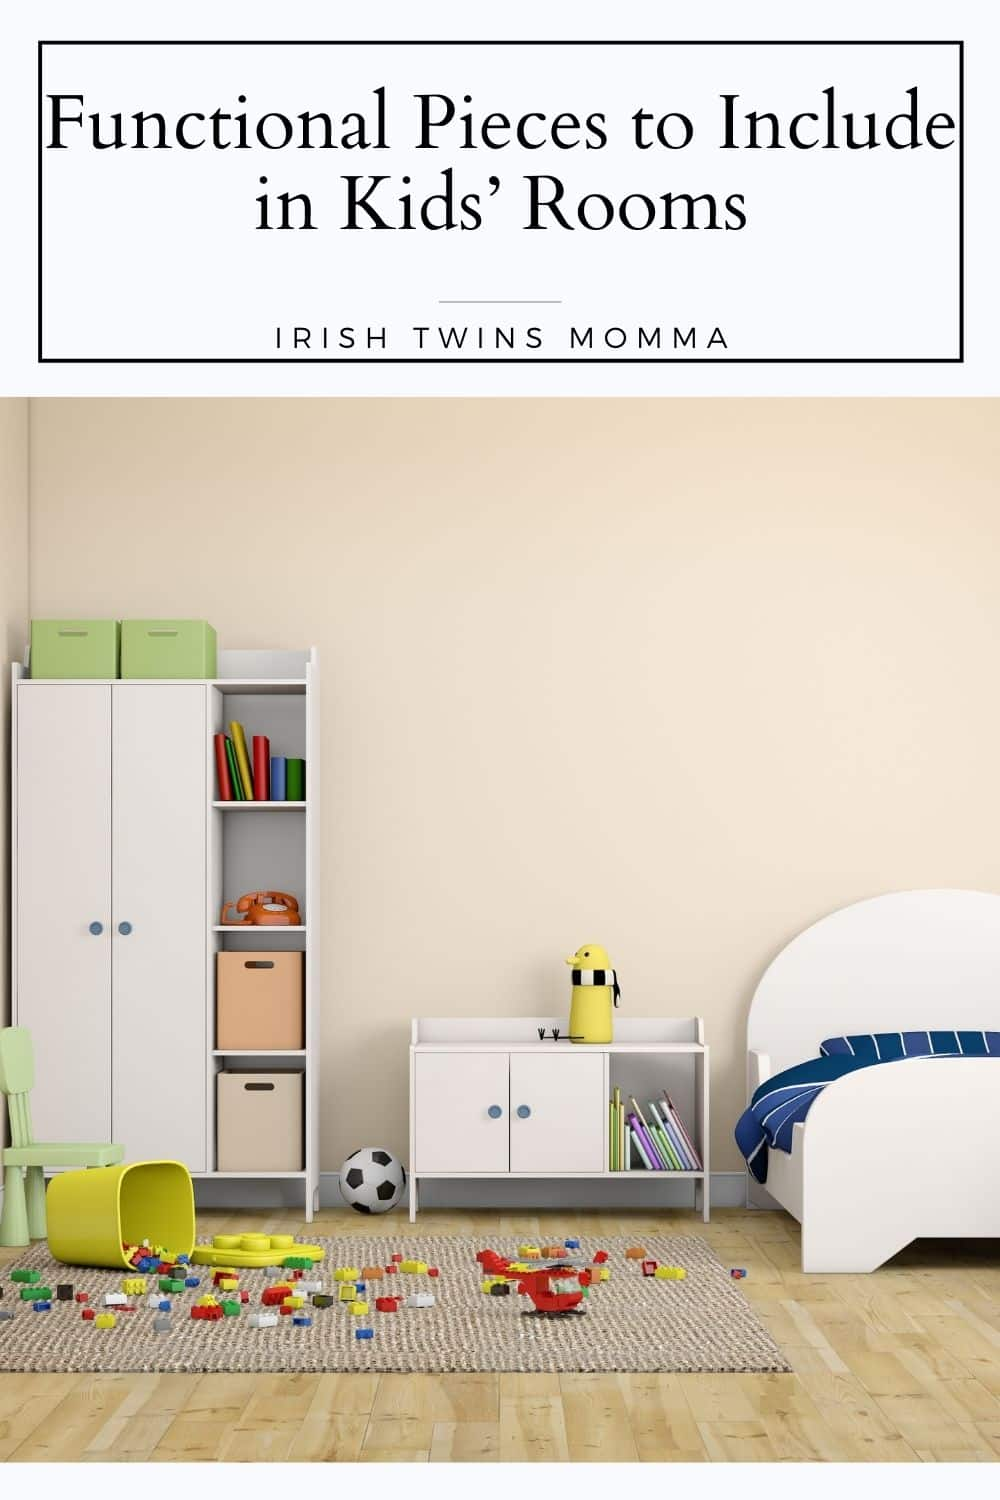 Functional Pieces to Include in Kids' Rooms (1)